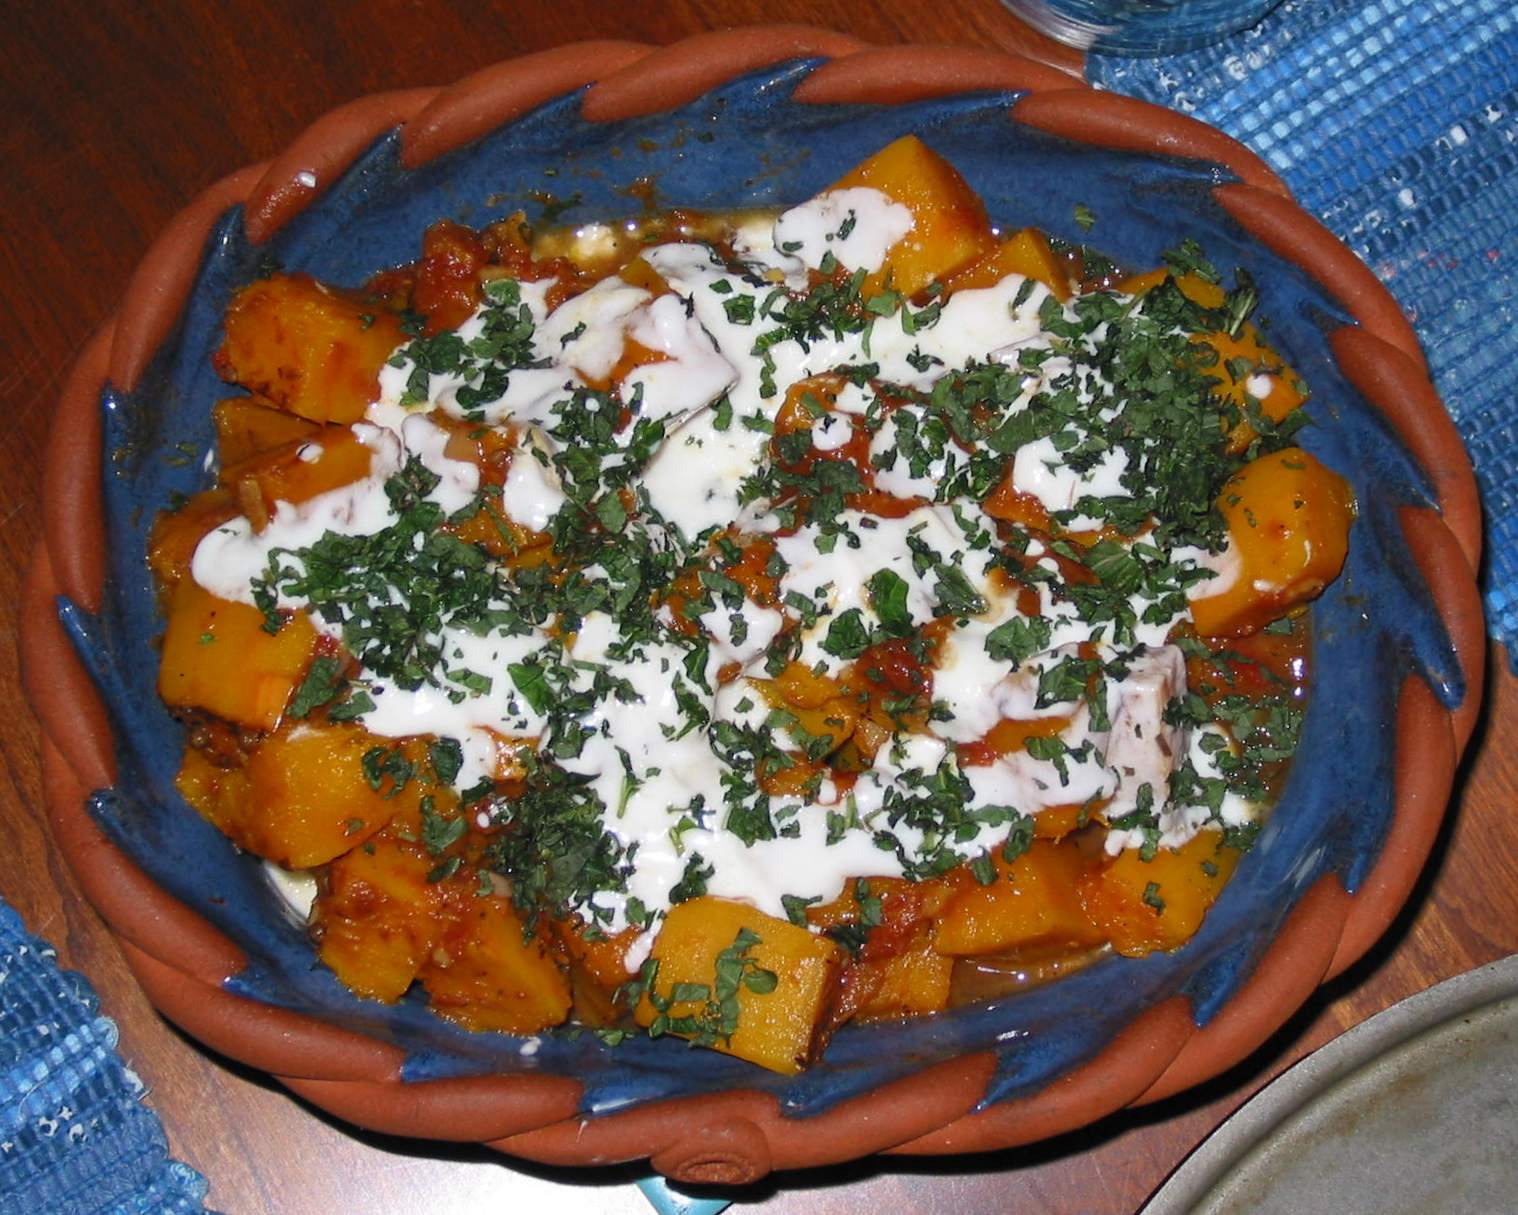 Kadoo Bouranee - A delectable sweet pumpkin dish from Afghanistan